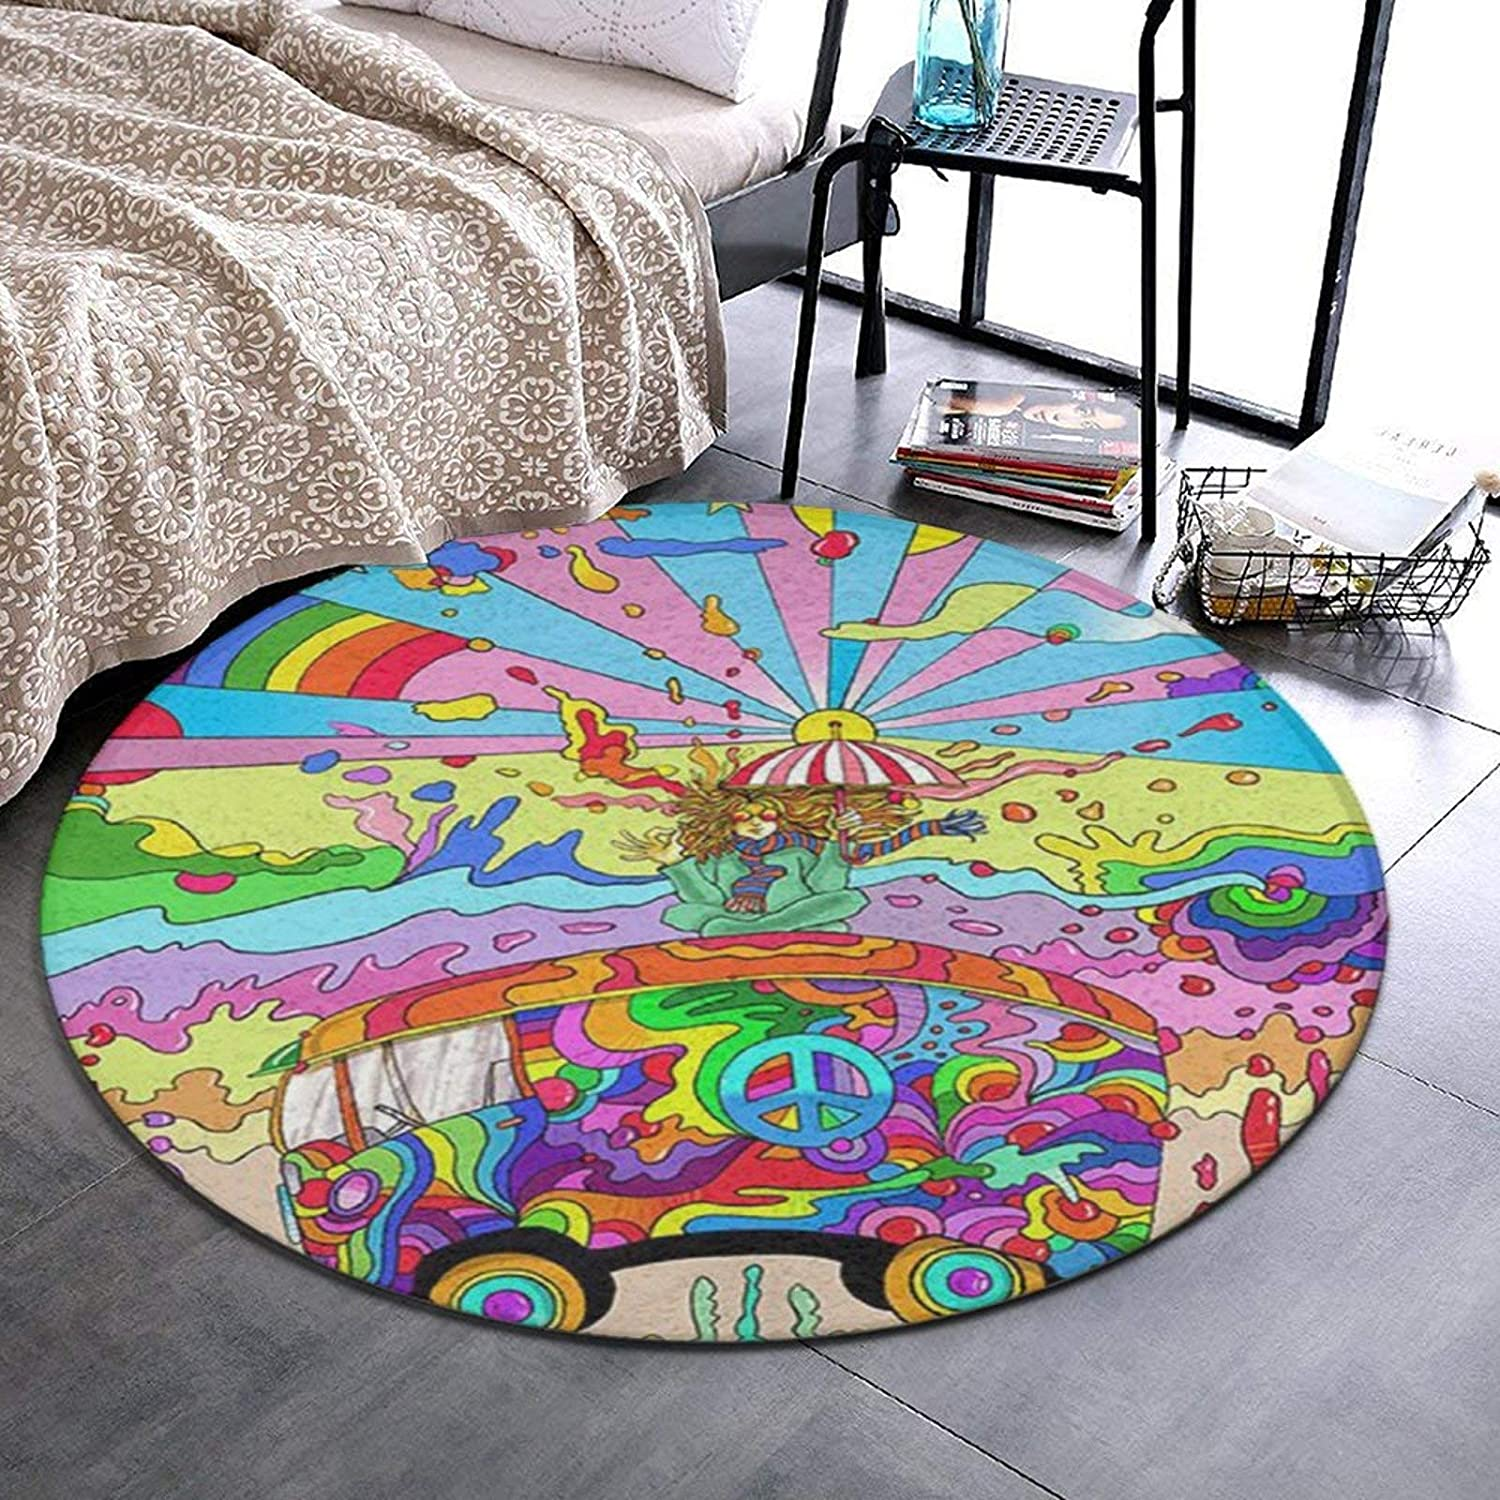 NiYoung Ultra Soft Round Area Rugs Floor Baltimore Mall Product Mat No Sofa Indoor